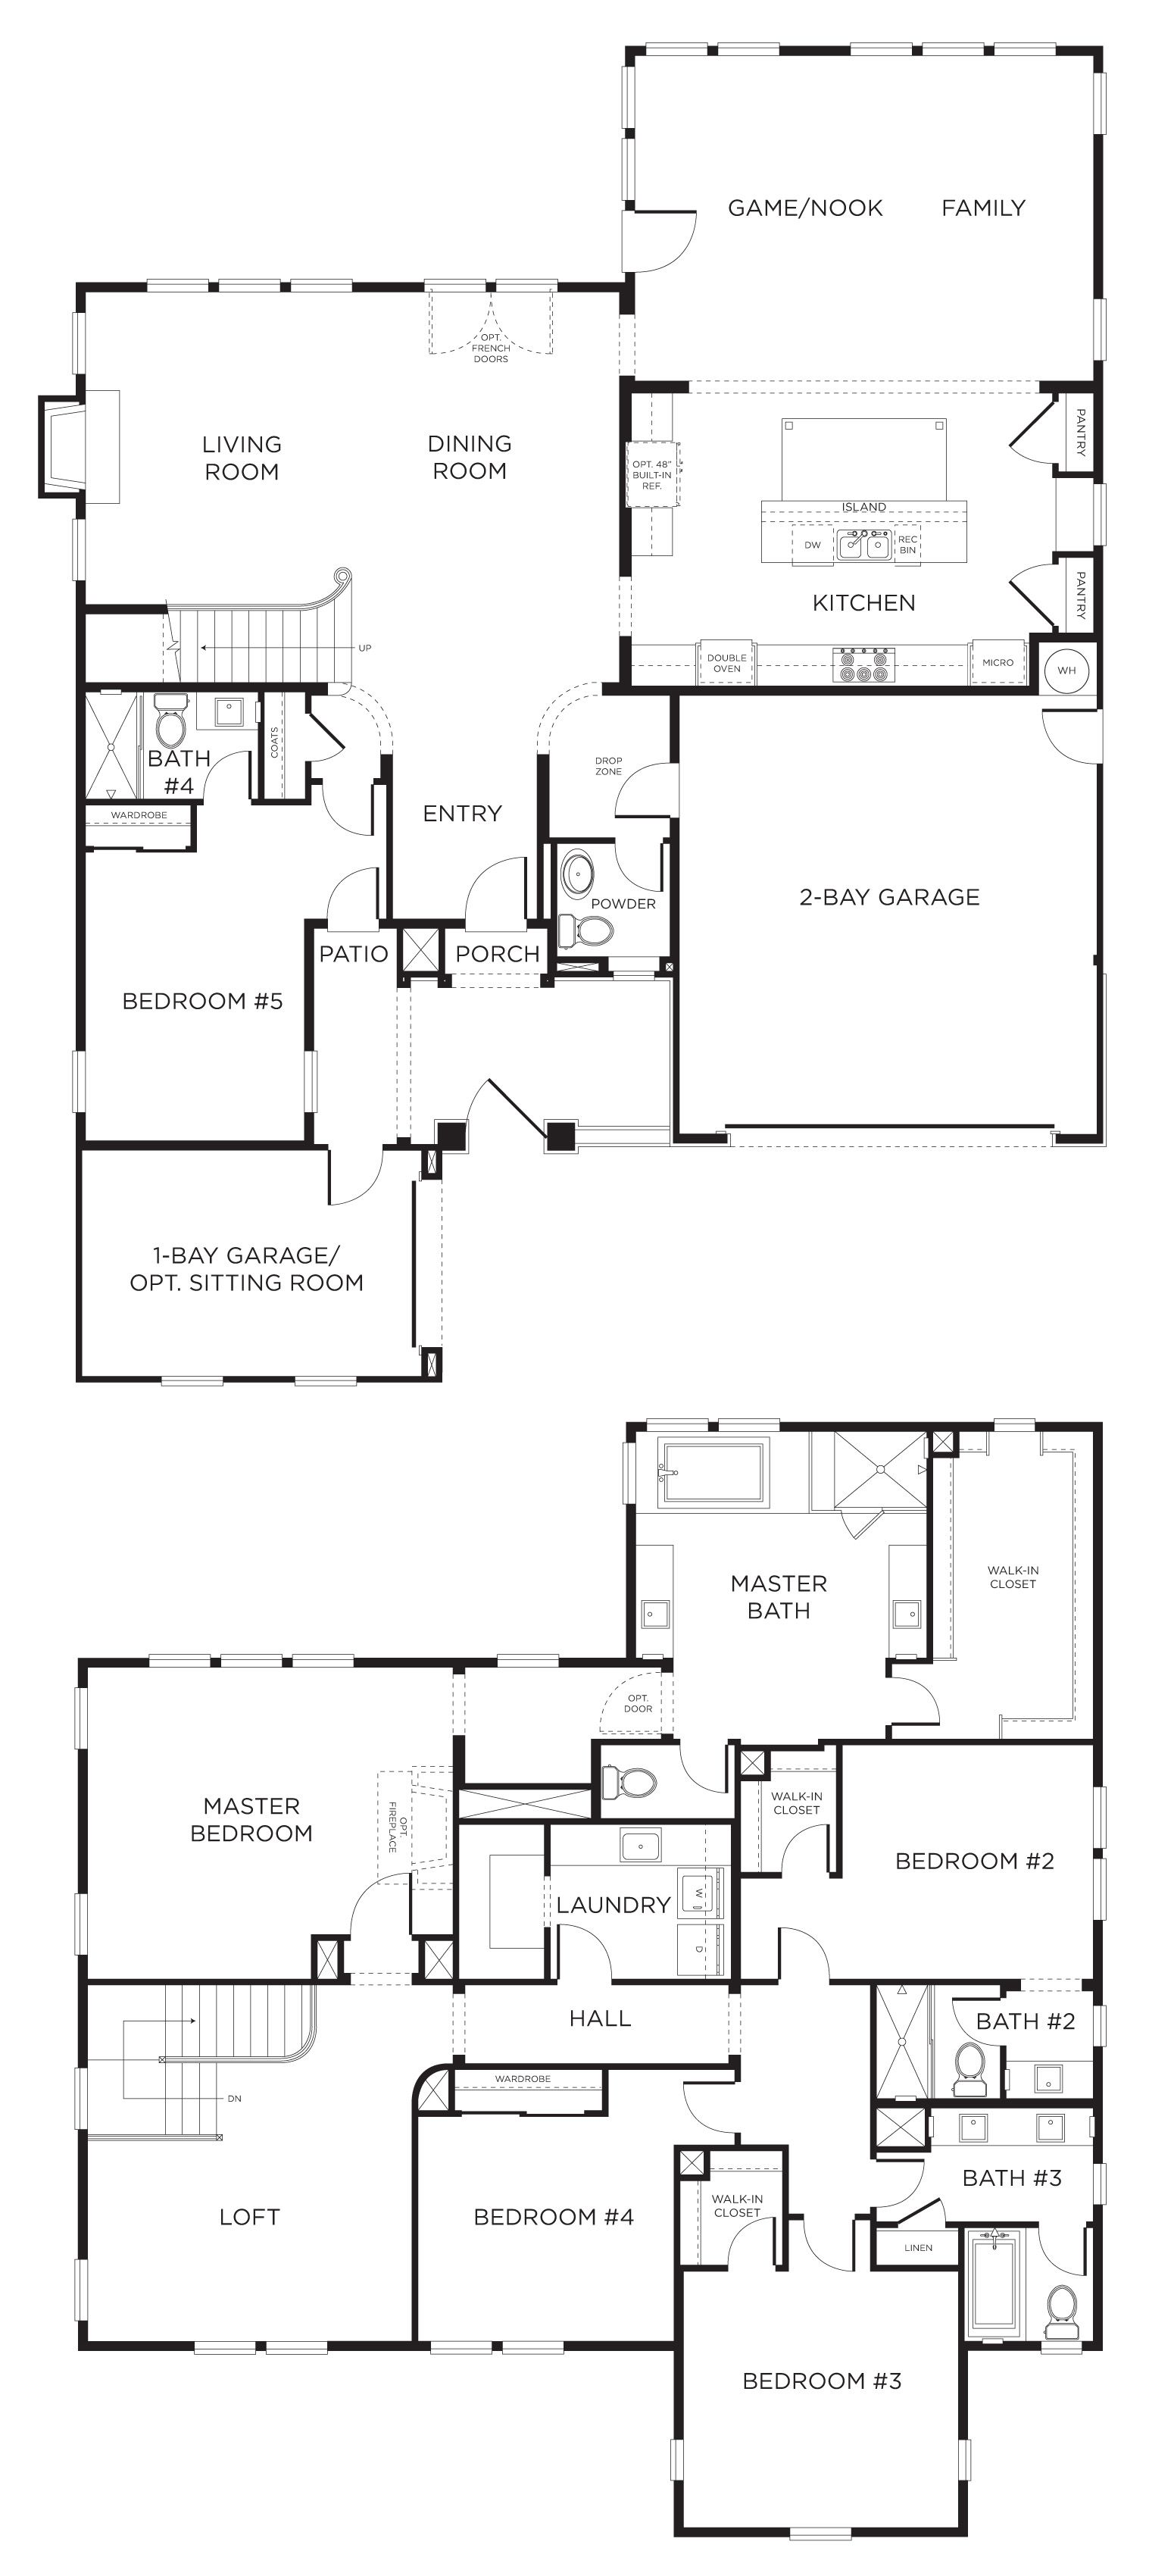 5 Bedroom House Plan I 39 D Move The 5th Room Upstairs And Change It To A Den Library Downstairs